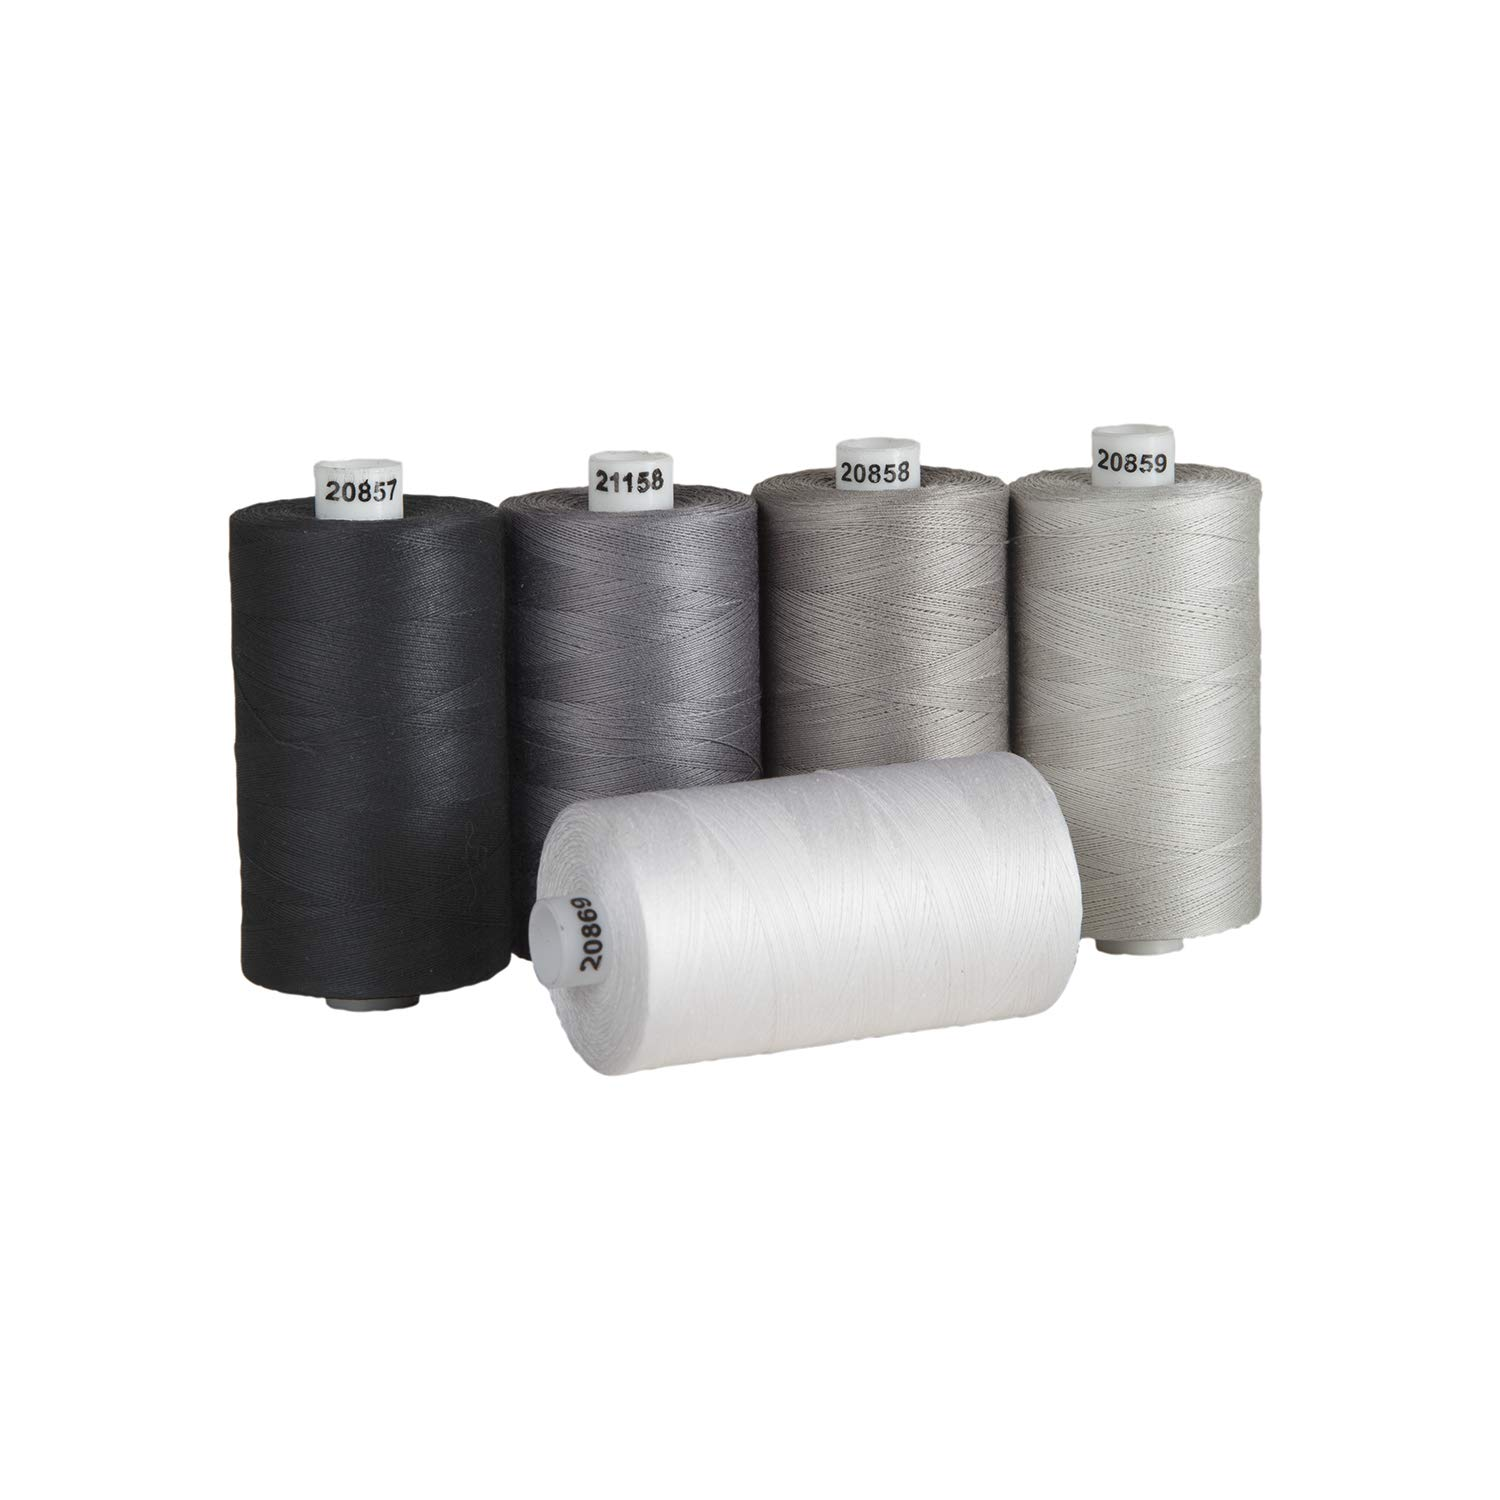 Connecting Threads 100% Cotton Thread Sets - 1200 Yard Spools (Salt & Pepper) by Connecting Threads